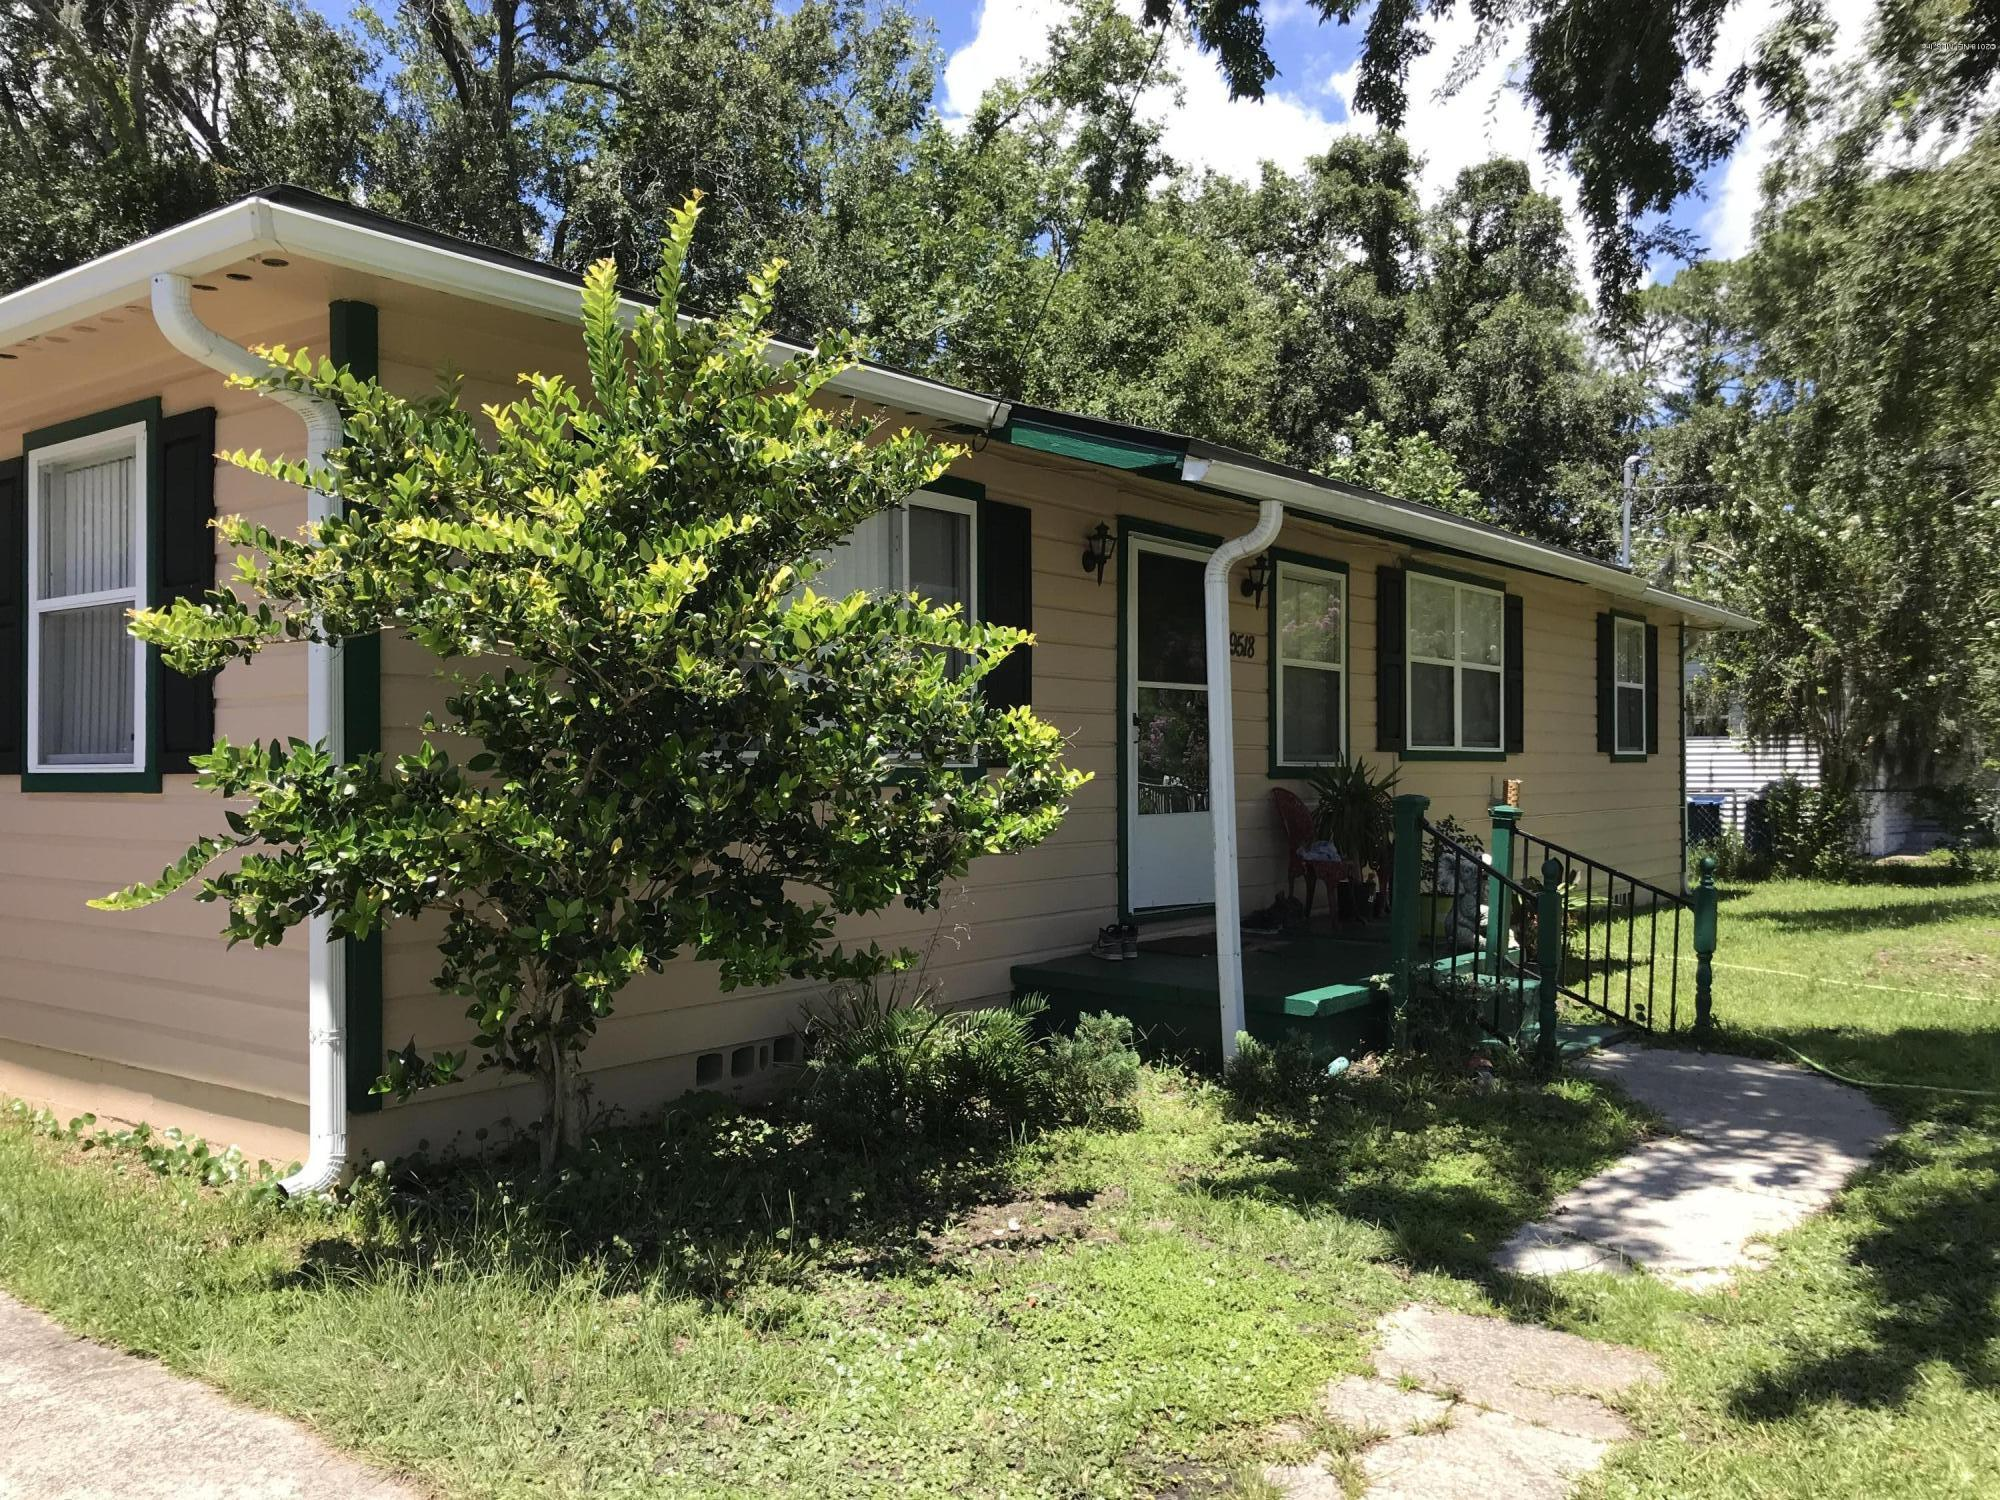 9518 INDIANA, JACKSONVILLE, FLORIDA 32218, 3 Bedrooms Bedrooms, ,1 BathroomBathrooms,Residential - single family,For sale,INDIANA,951603